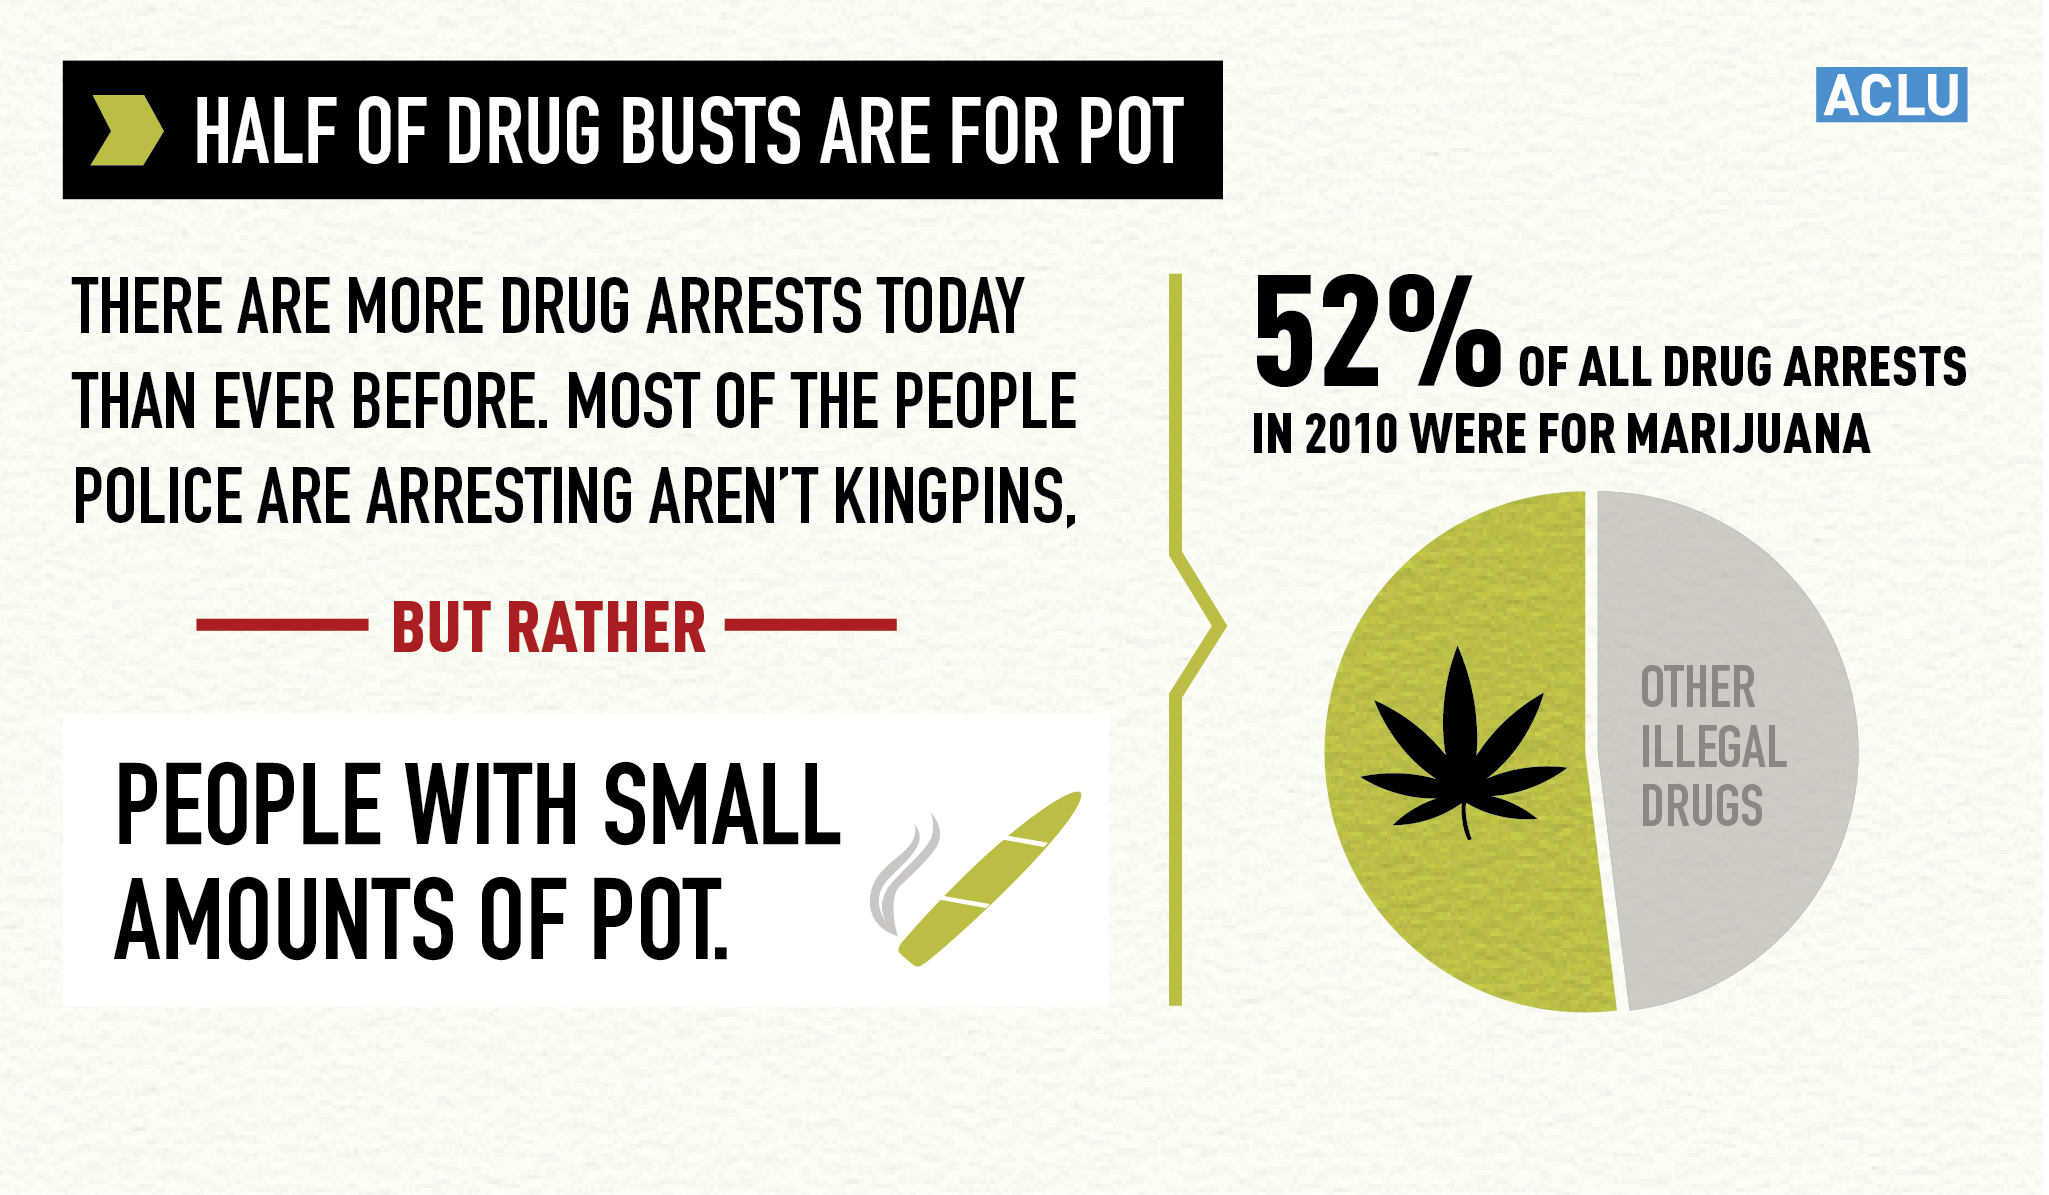 an analysis of the number of many rights According to the aclu's original analysis, marijuana arrests now account for over half of all drug arrests in the united states do you know your rights.